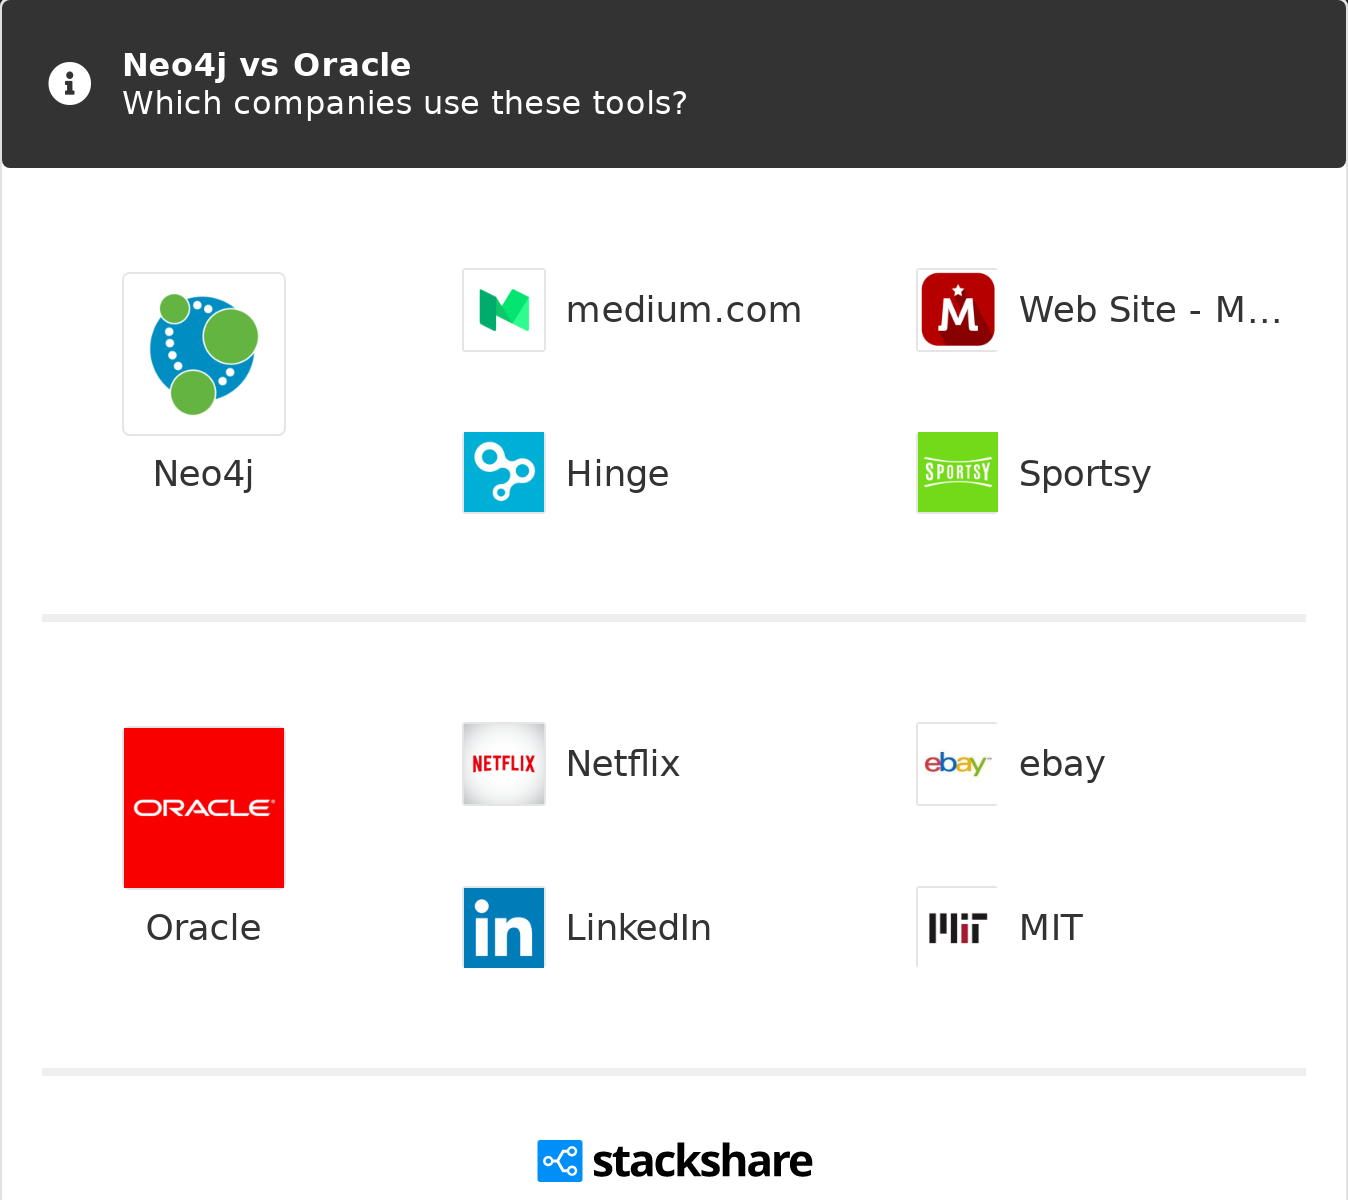 Neo4j vs Oracle | What are the differences?